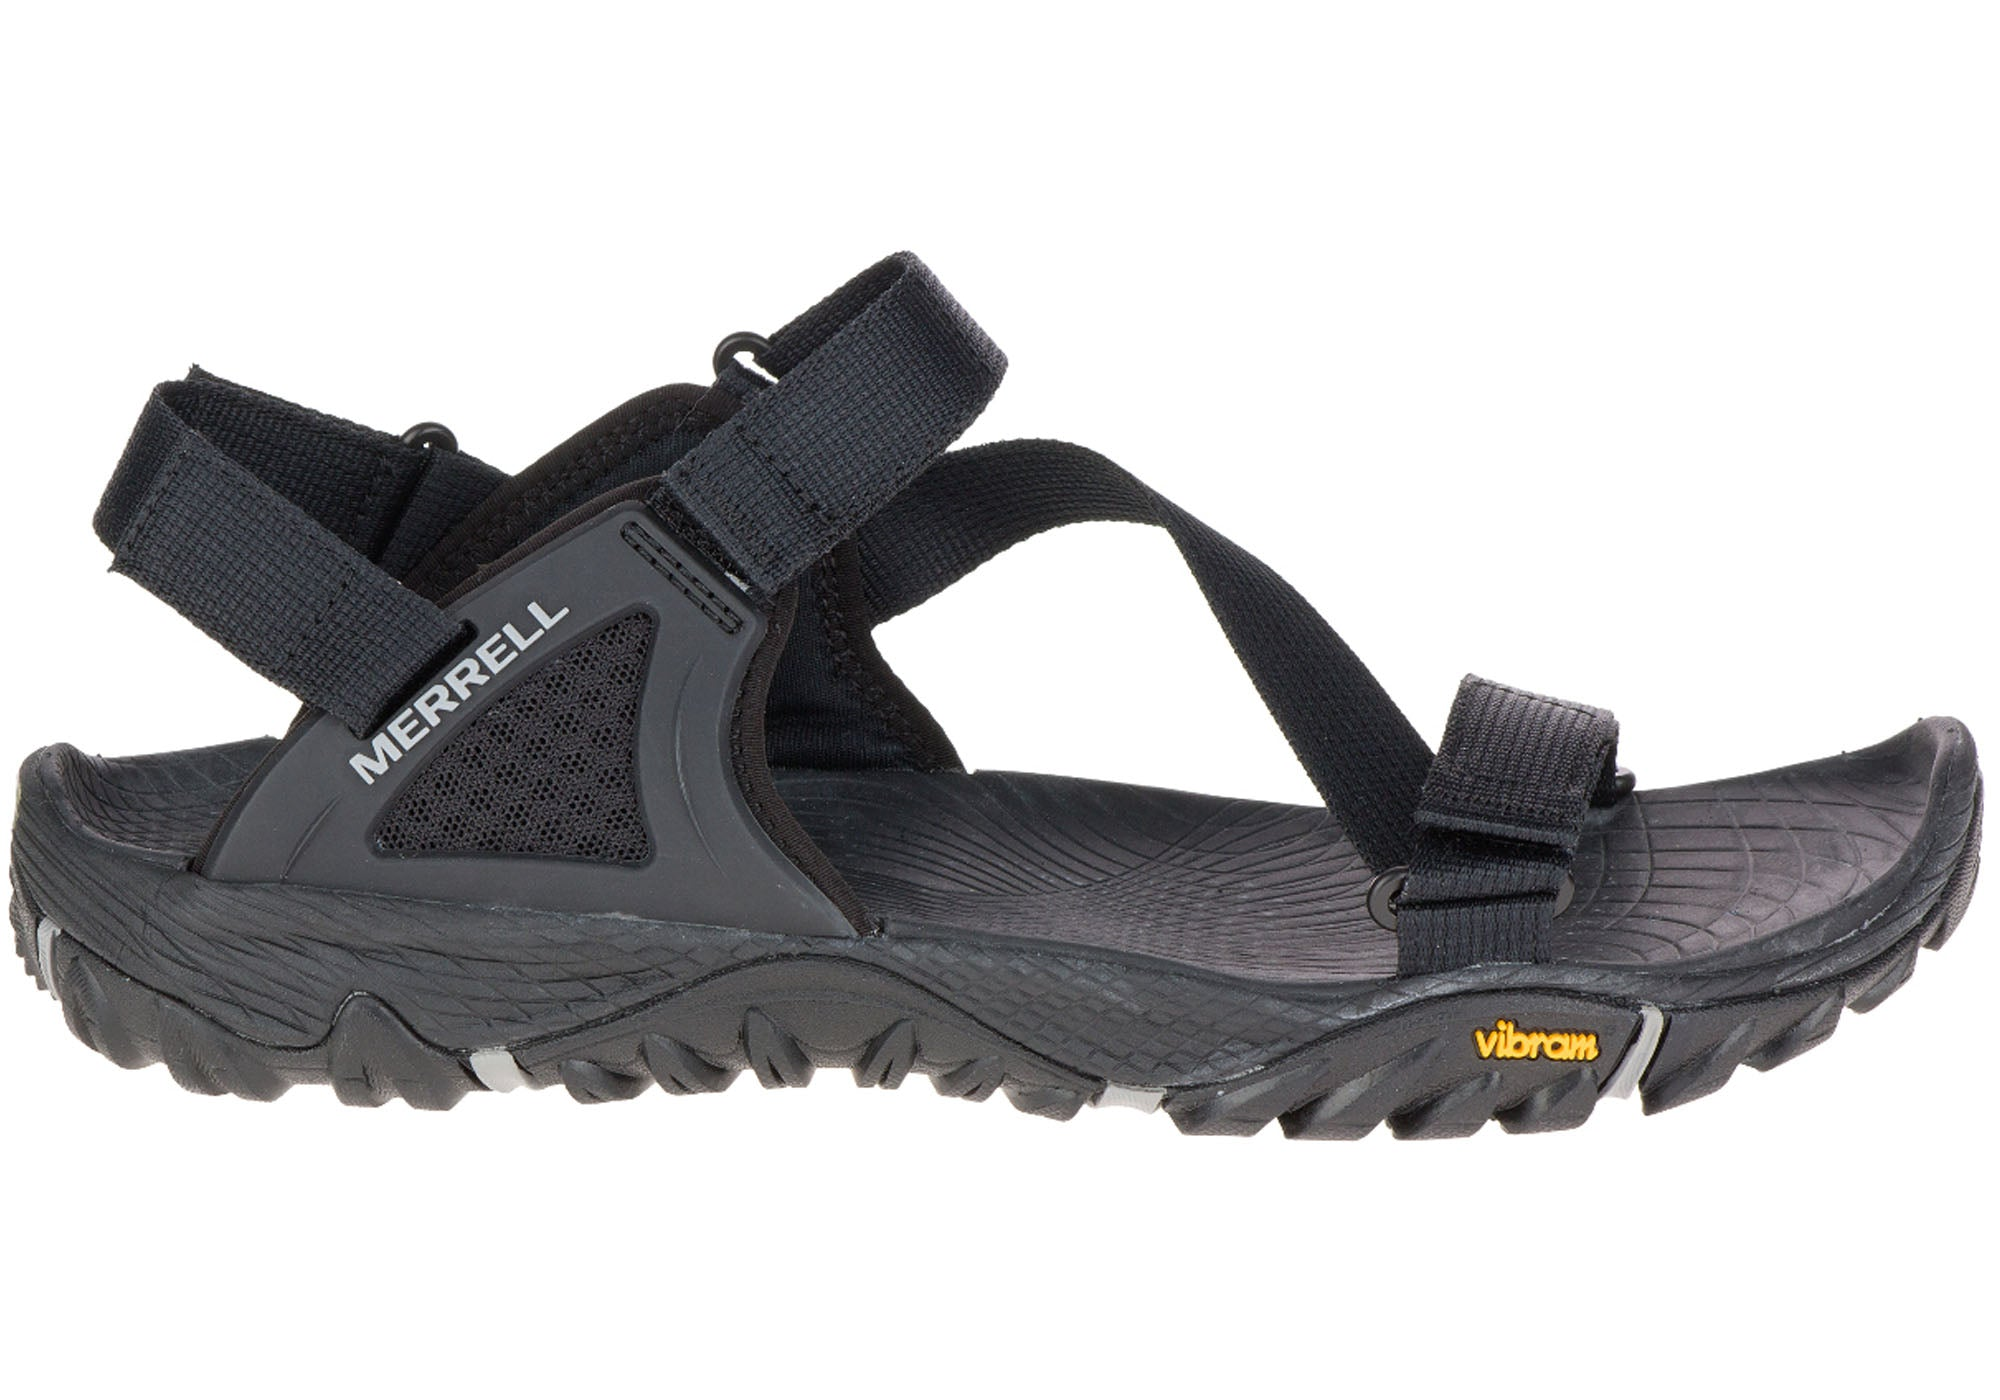 633c0783359 Home Merrell Mens All Out Blaze Web Sandals With Adjustable Straps. Black   Black